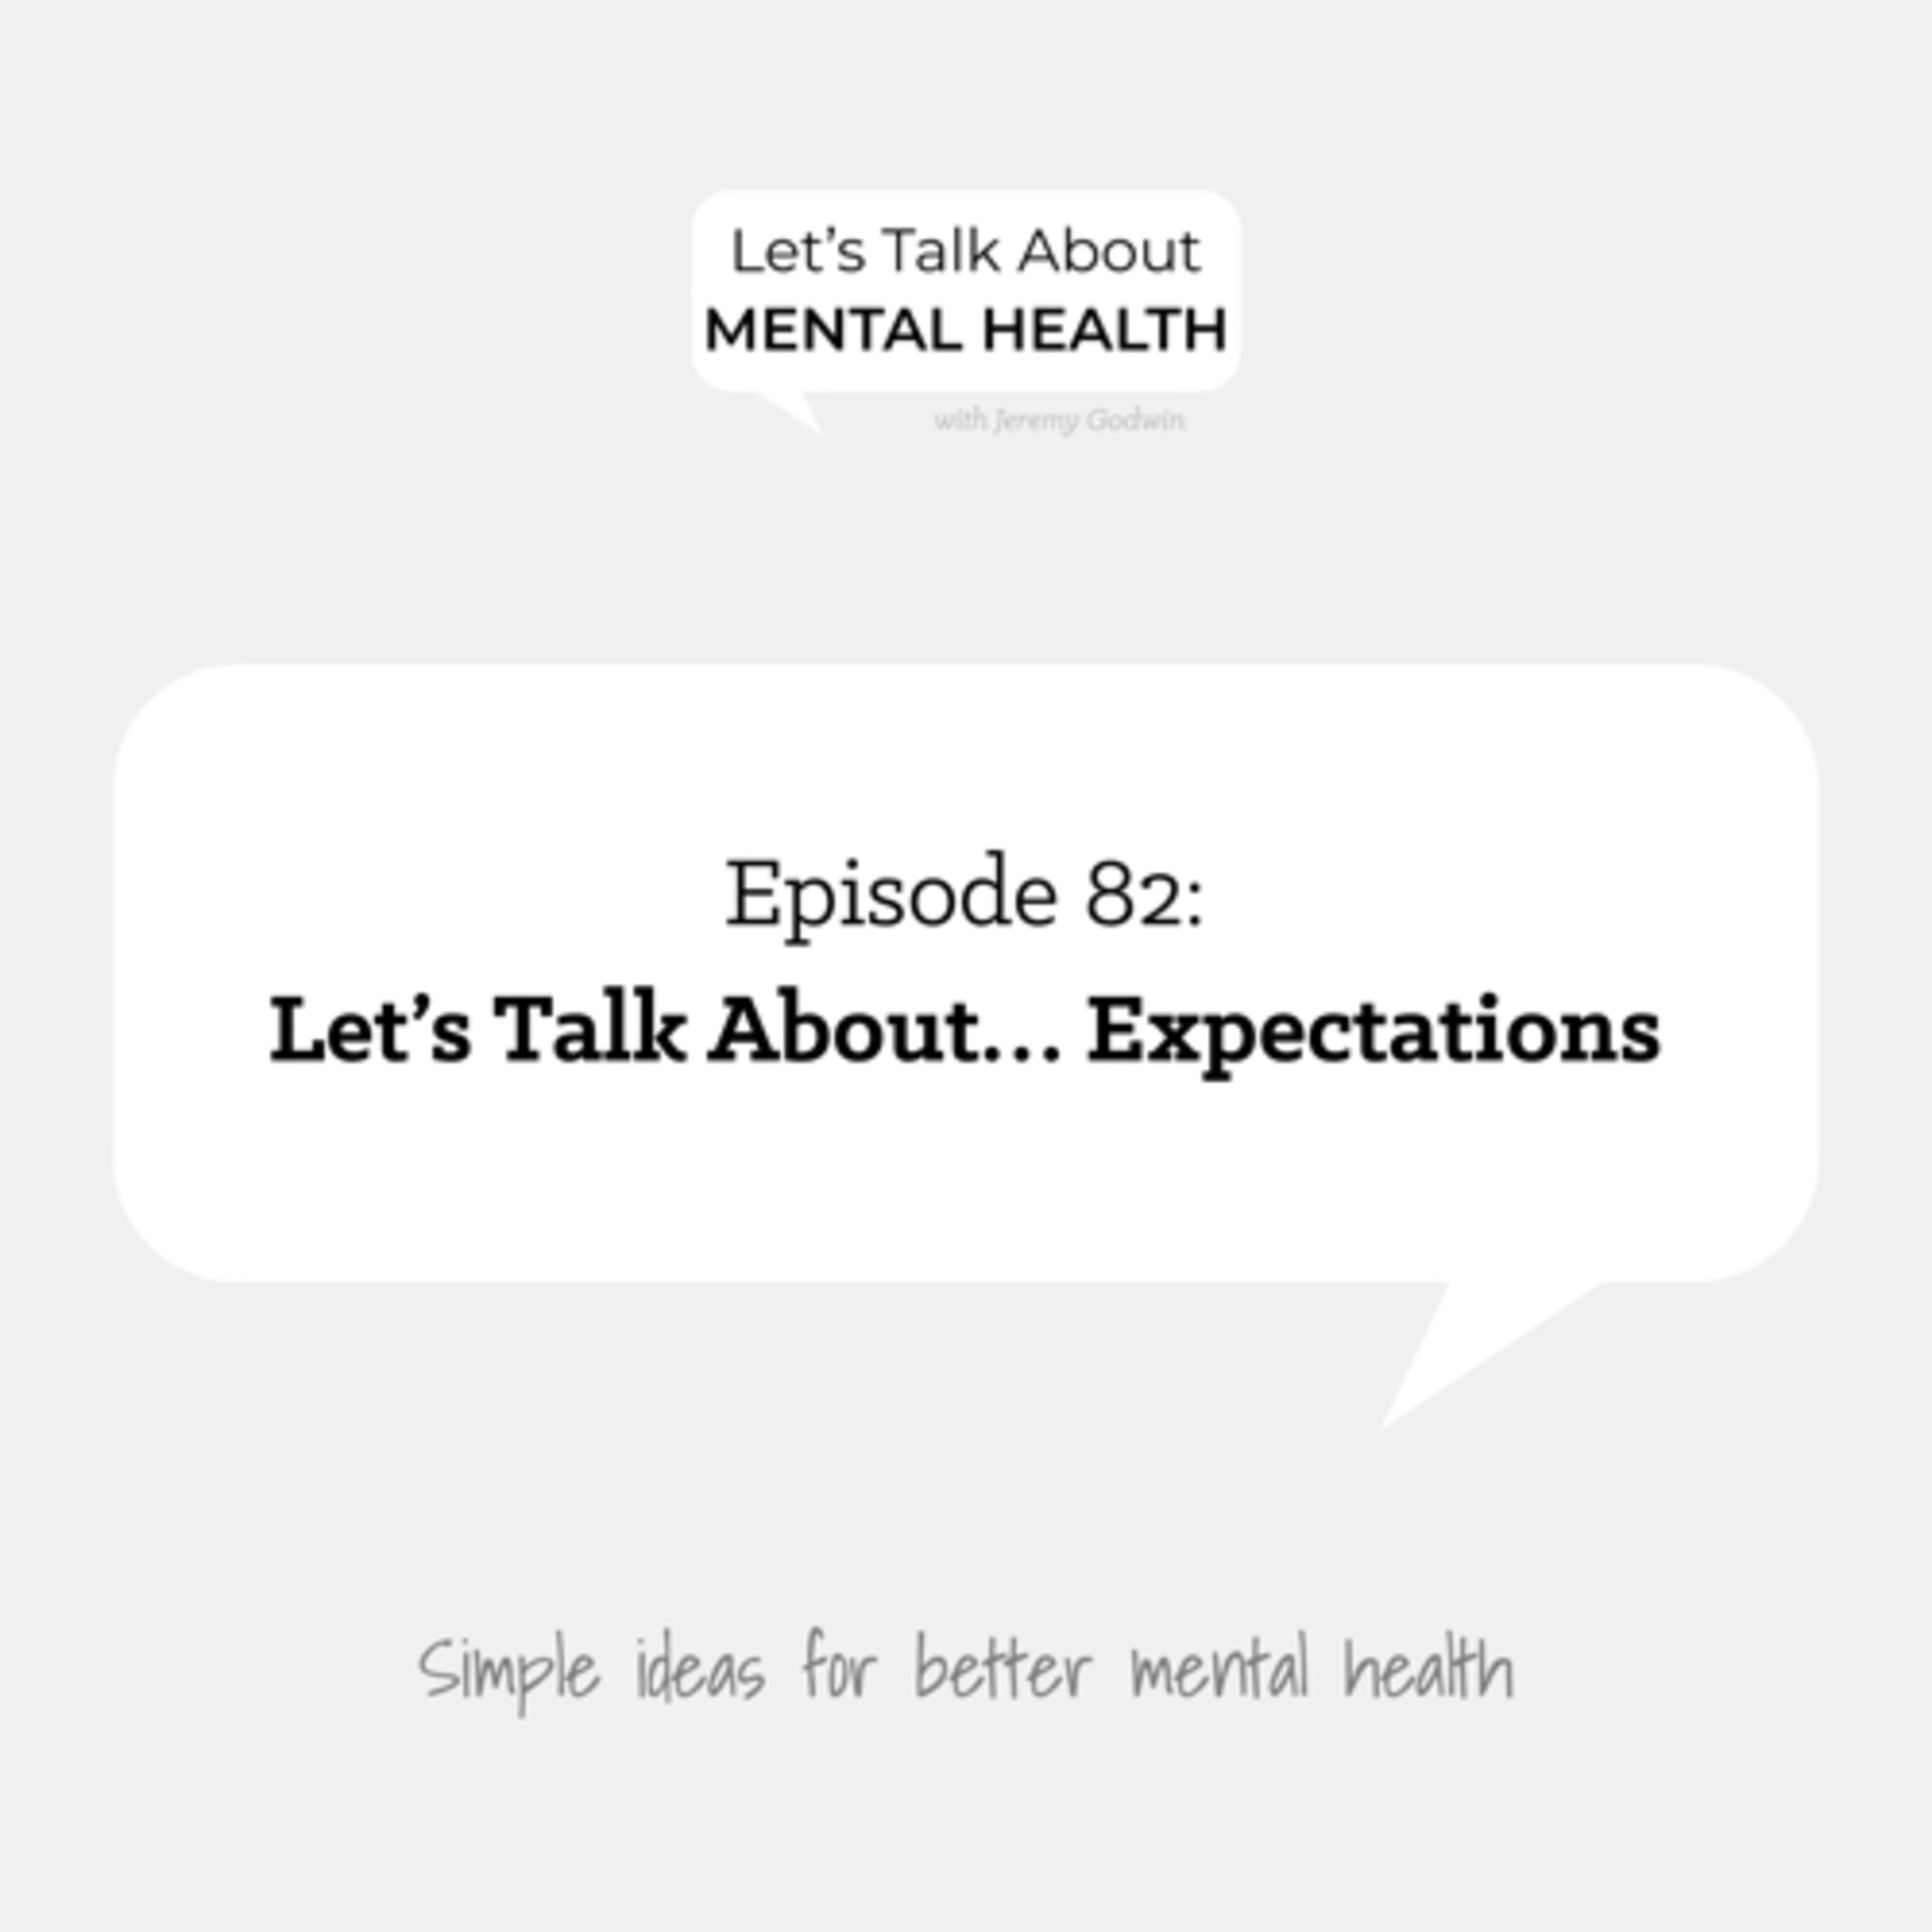 Let's Talk About Mental Health - Let's Talk About… Expectations